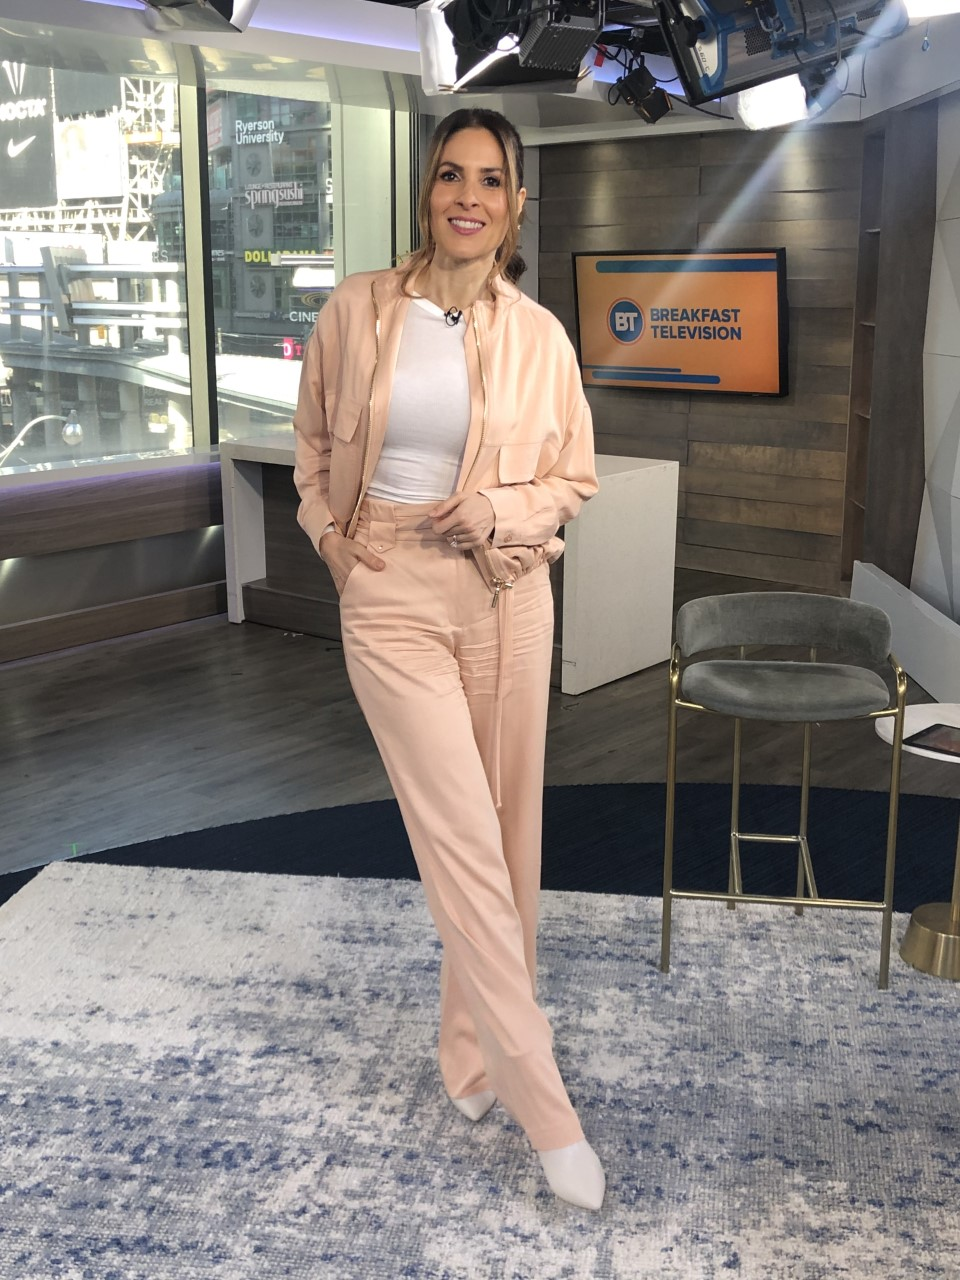 Dina wearing all pink ensemble with white top